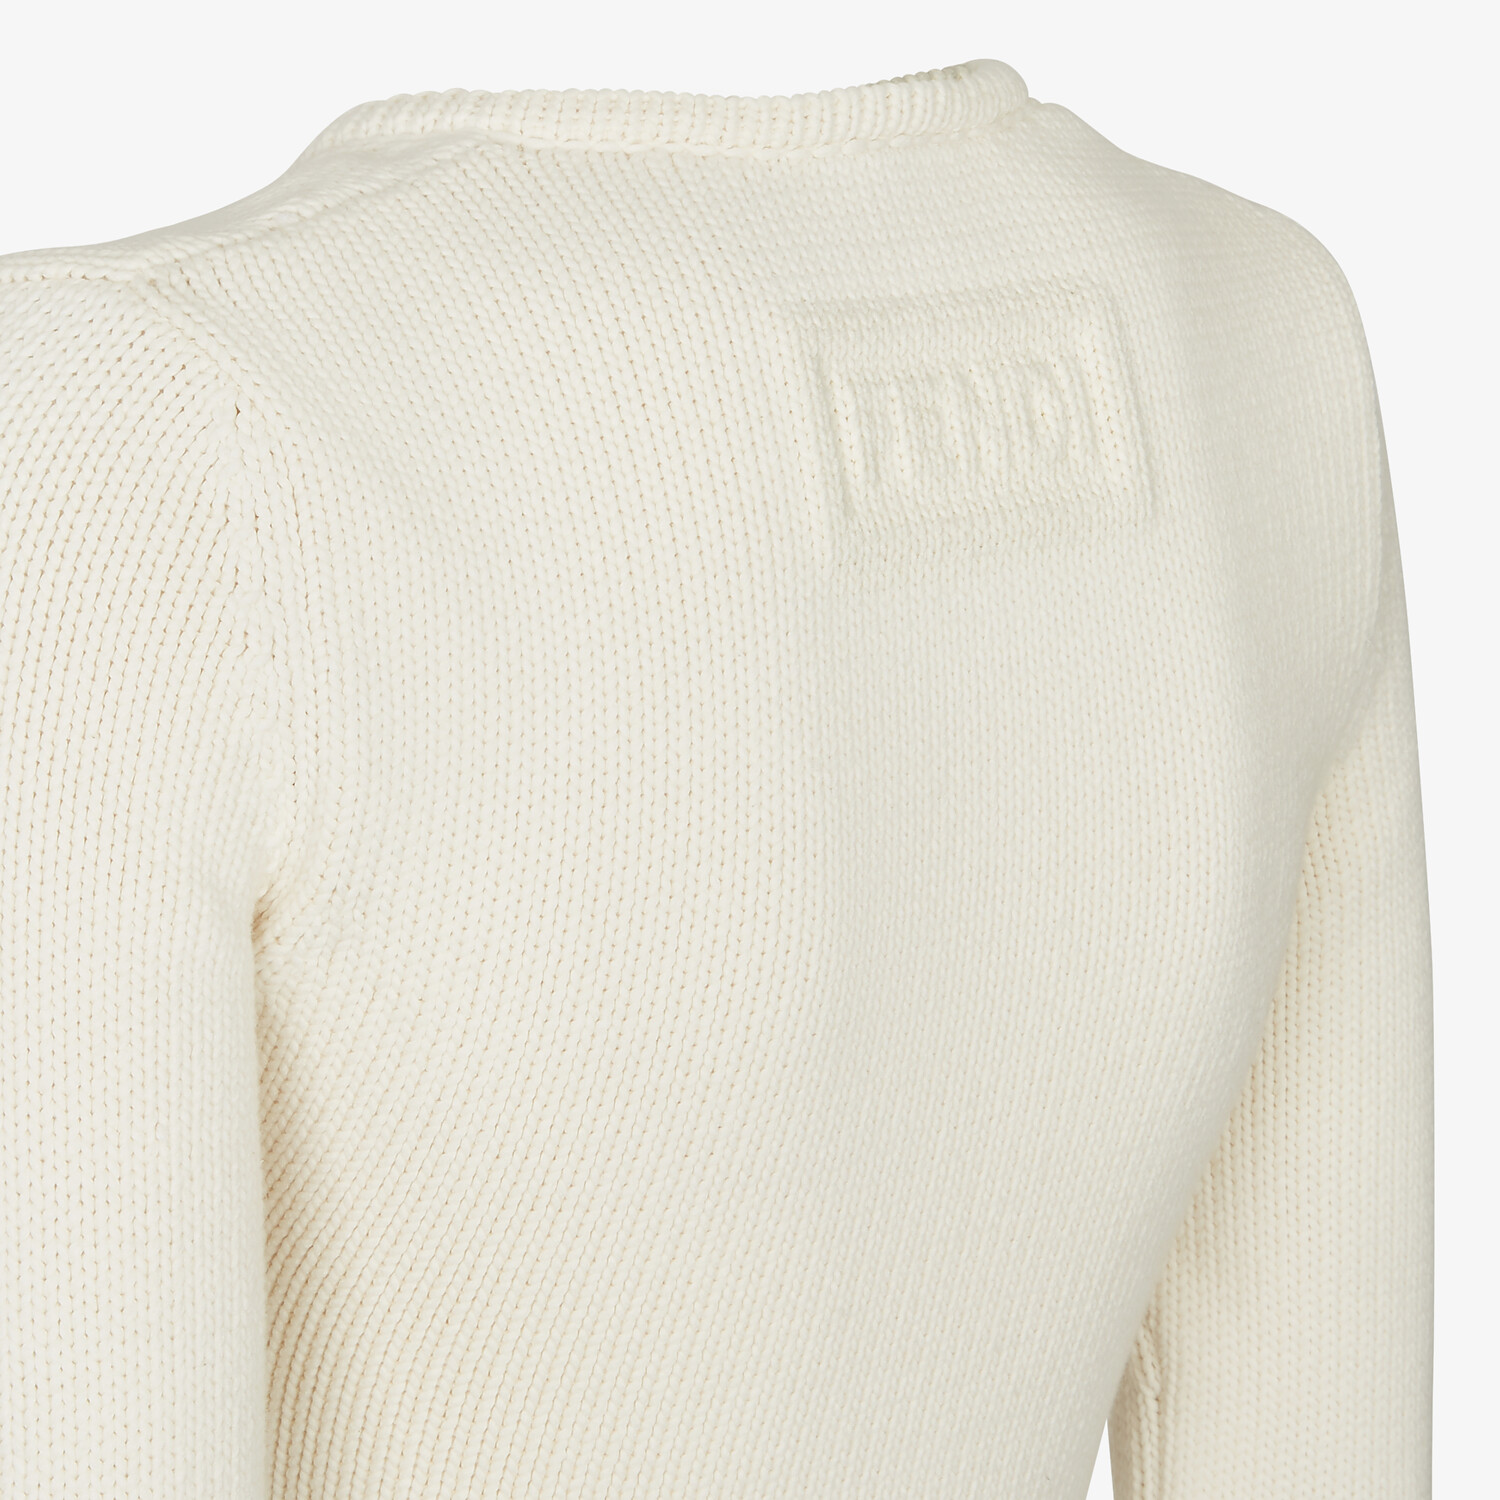 FENDI SWEATER - White cotton sweater - view 3 detail